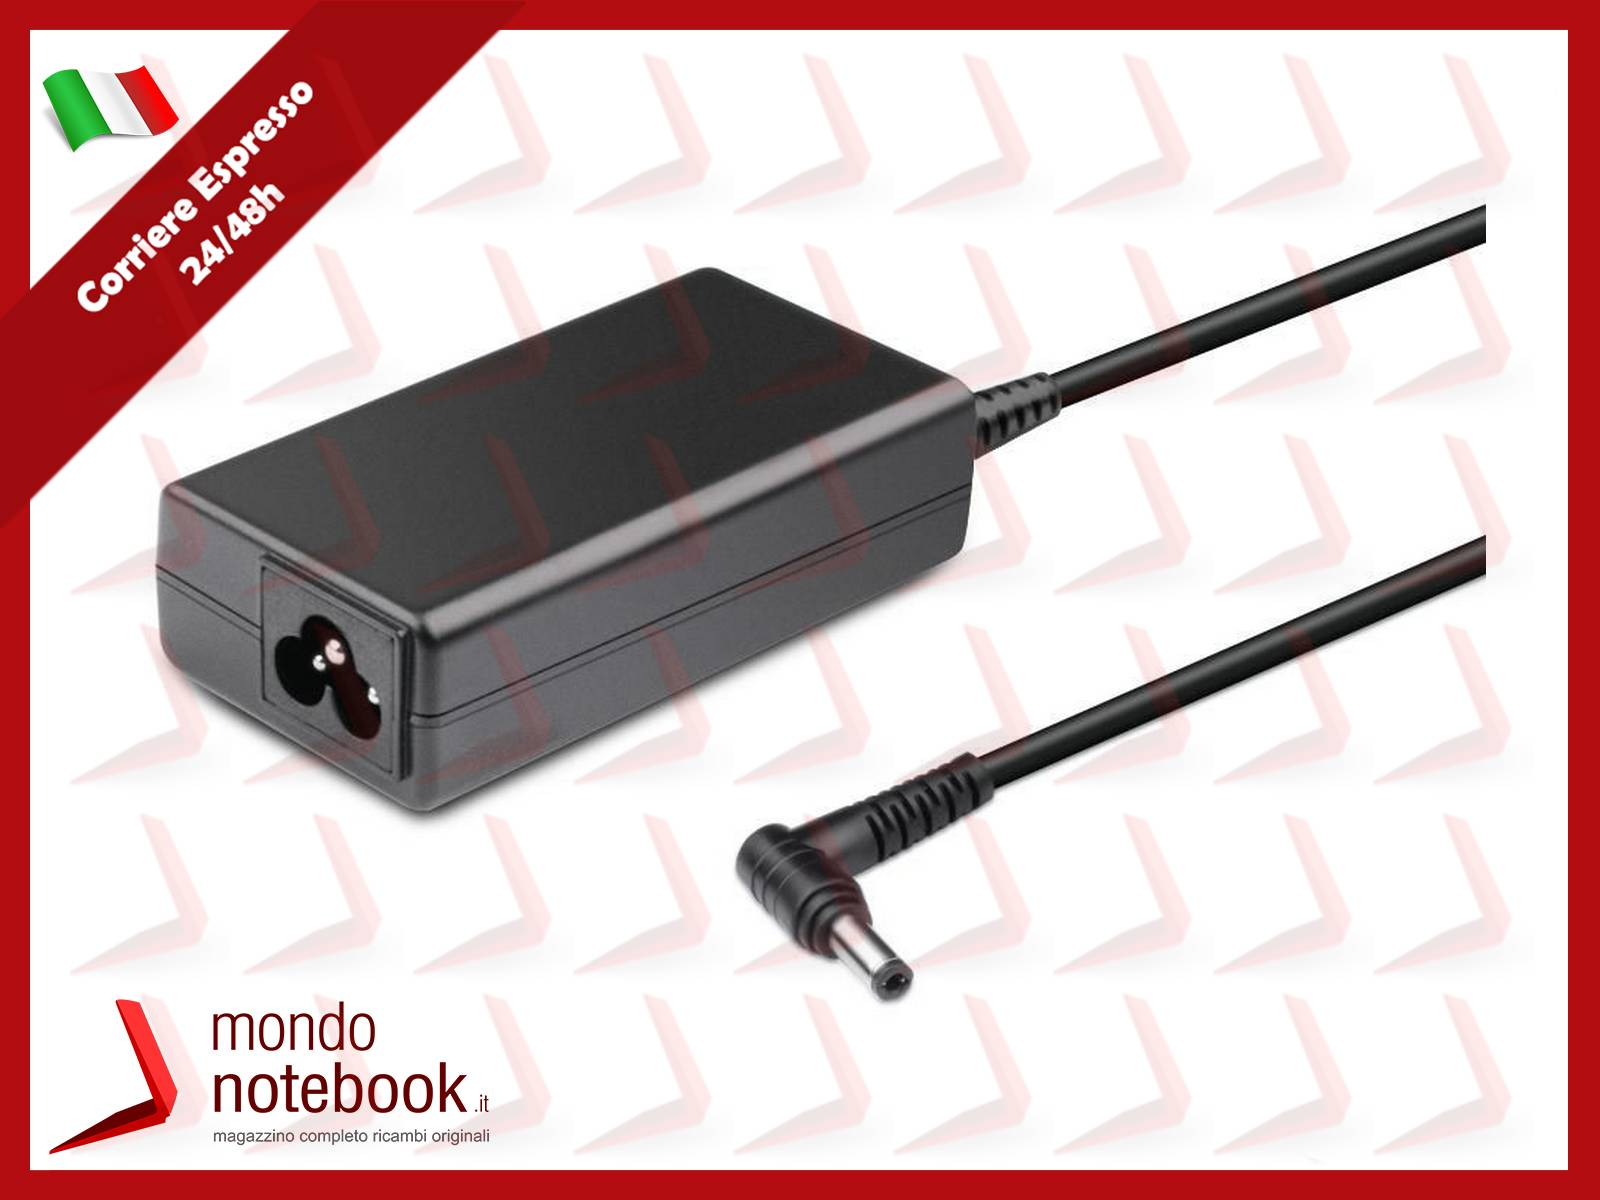 https://www.mondonotebook.it/13264/connettore-di-alimentazione-dc-power-jack-pj557-lenovo-ideapad-yoga-11-11s.jpg